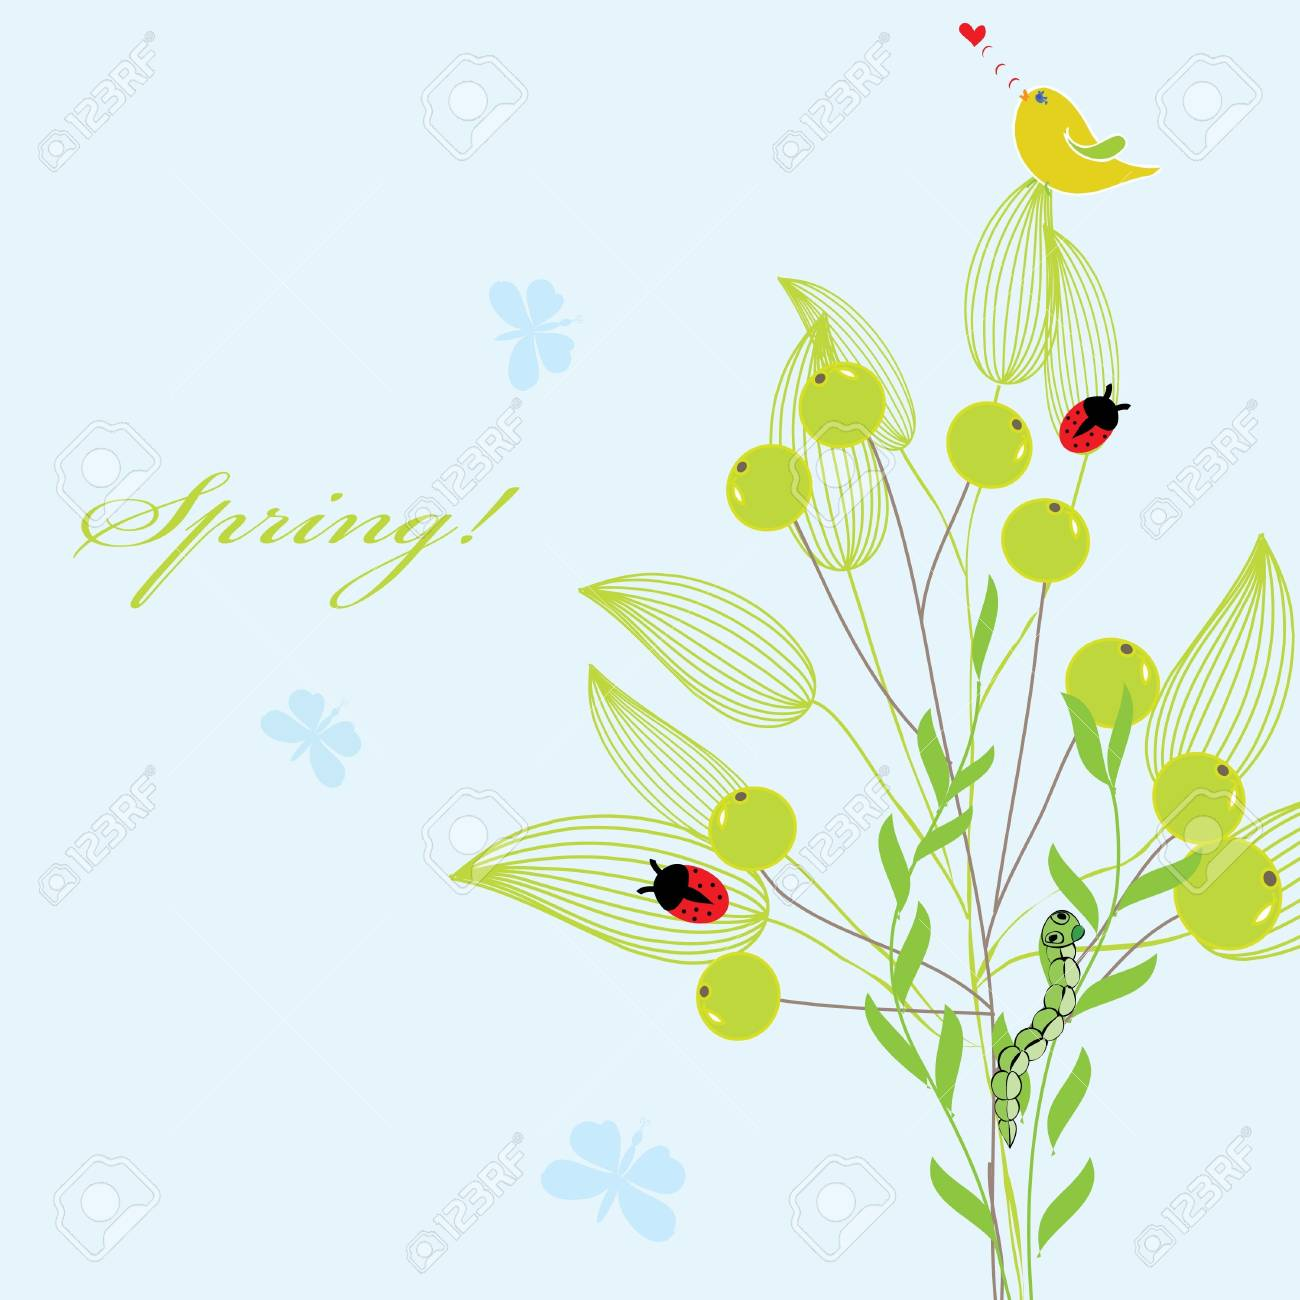 Abstract spring background Stock Vector - 12812990